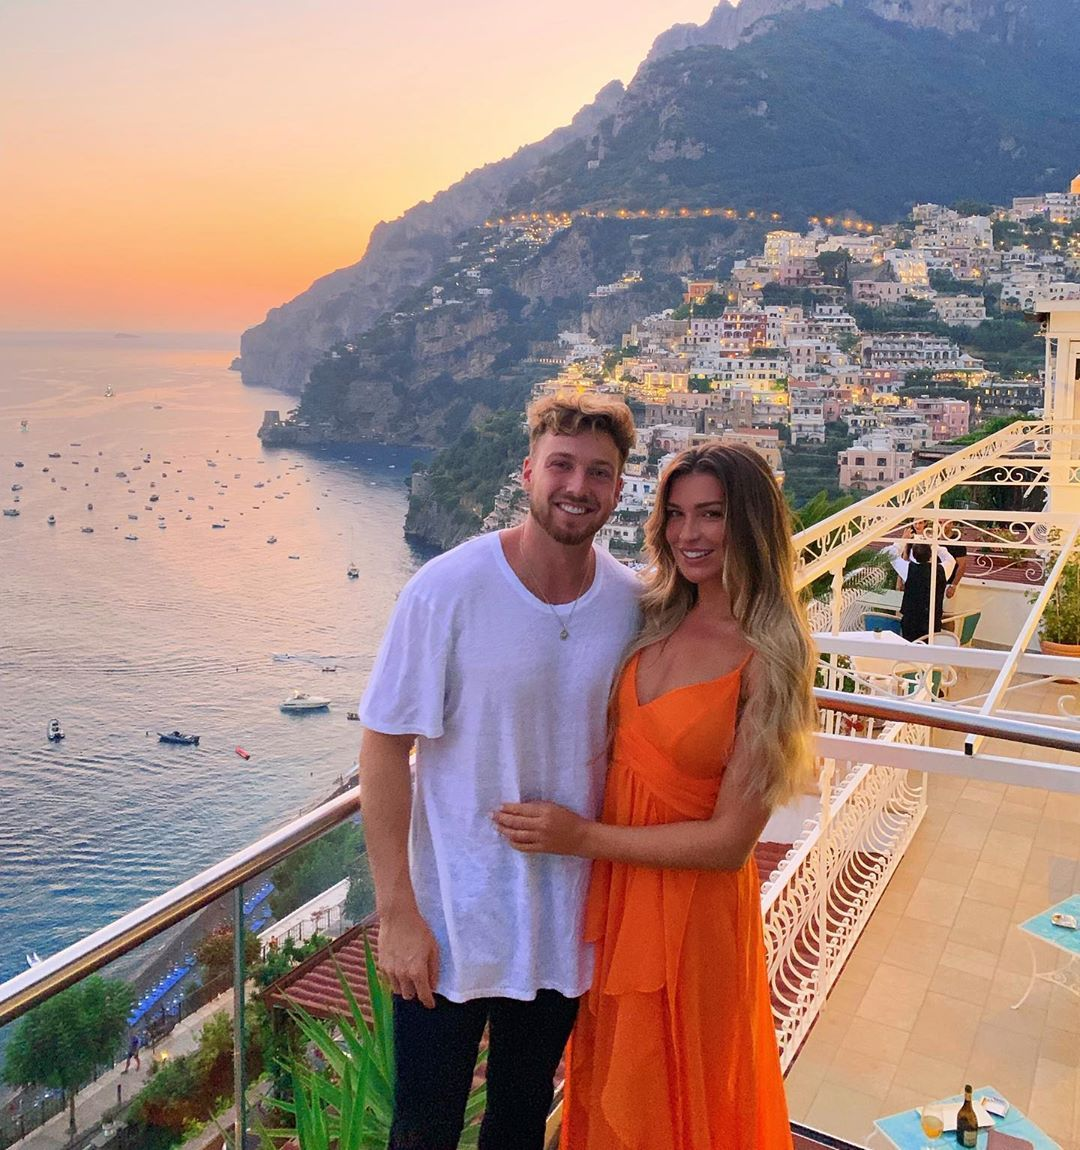 Image may contain: Sam and Zara Made in Chelsea, Sam Thompson, Zara McDermott, Made in Chelsea, new, series, 18, cast, Love Island, relationship, together, Vacation, Evening Dress, Gown, Apparel, Clothing, Fashion, Robe, Railing, Balcony, Person, Human